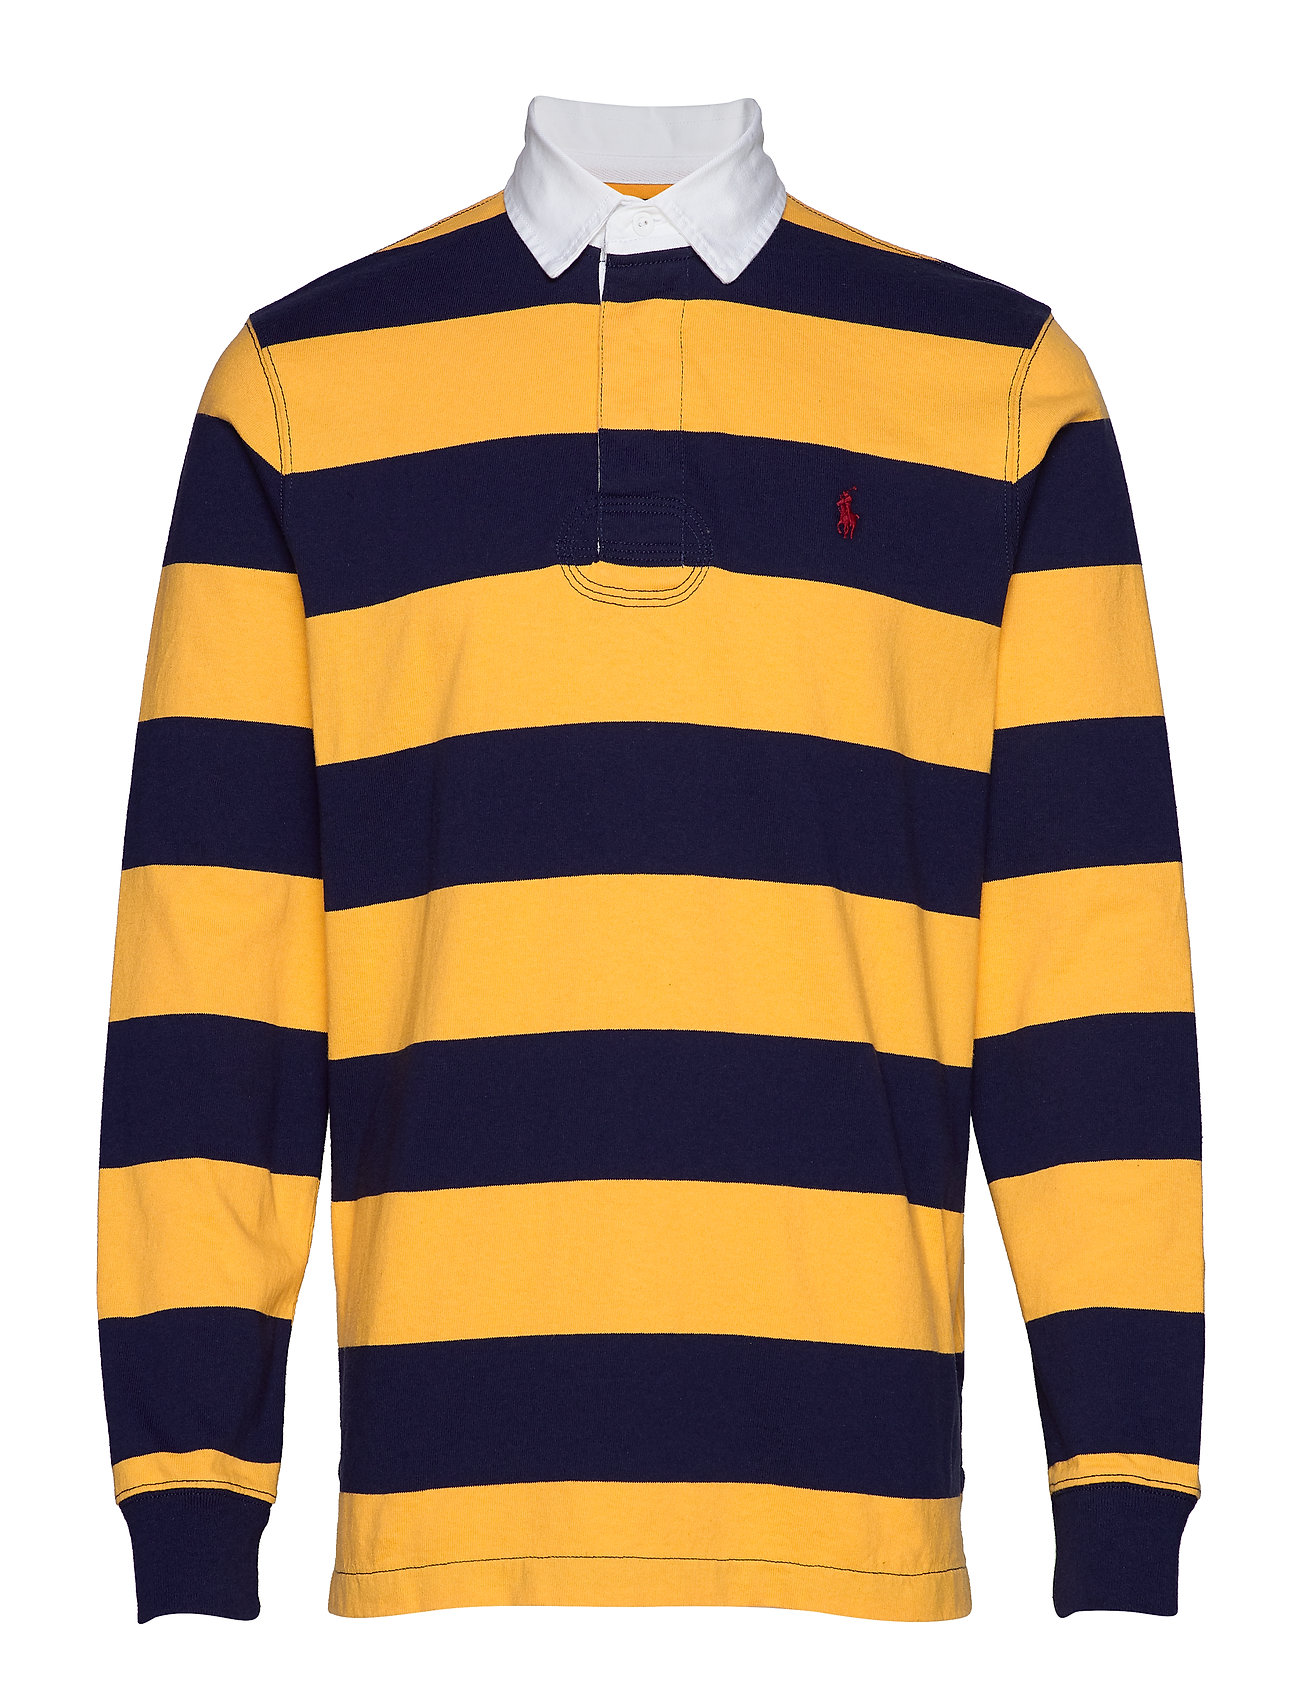 Polo Ralph Lauren The Iconic Rugby Shirt - FRENCH NAVY/GOLD